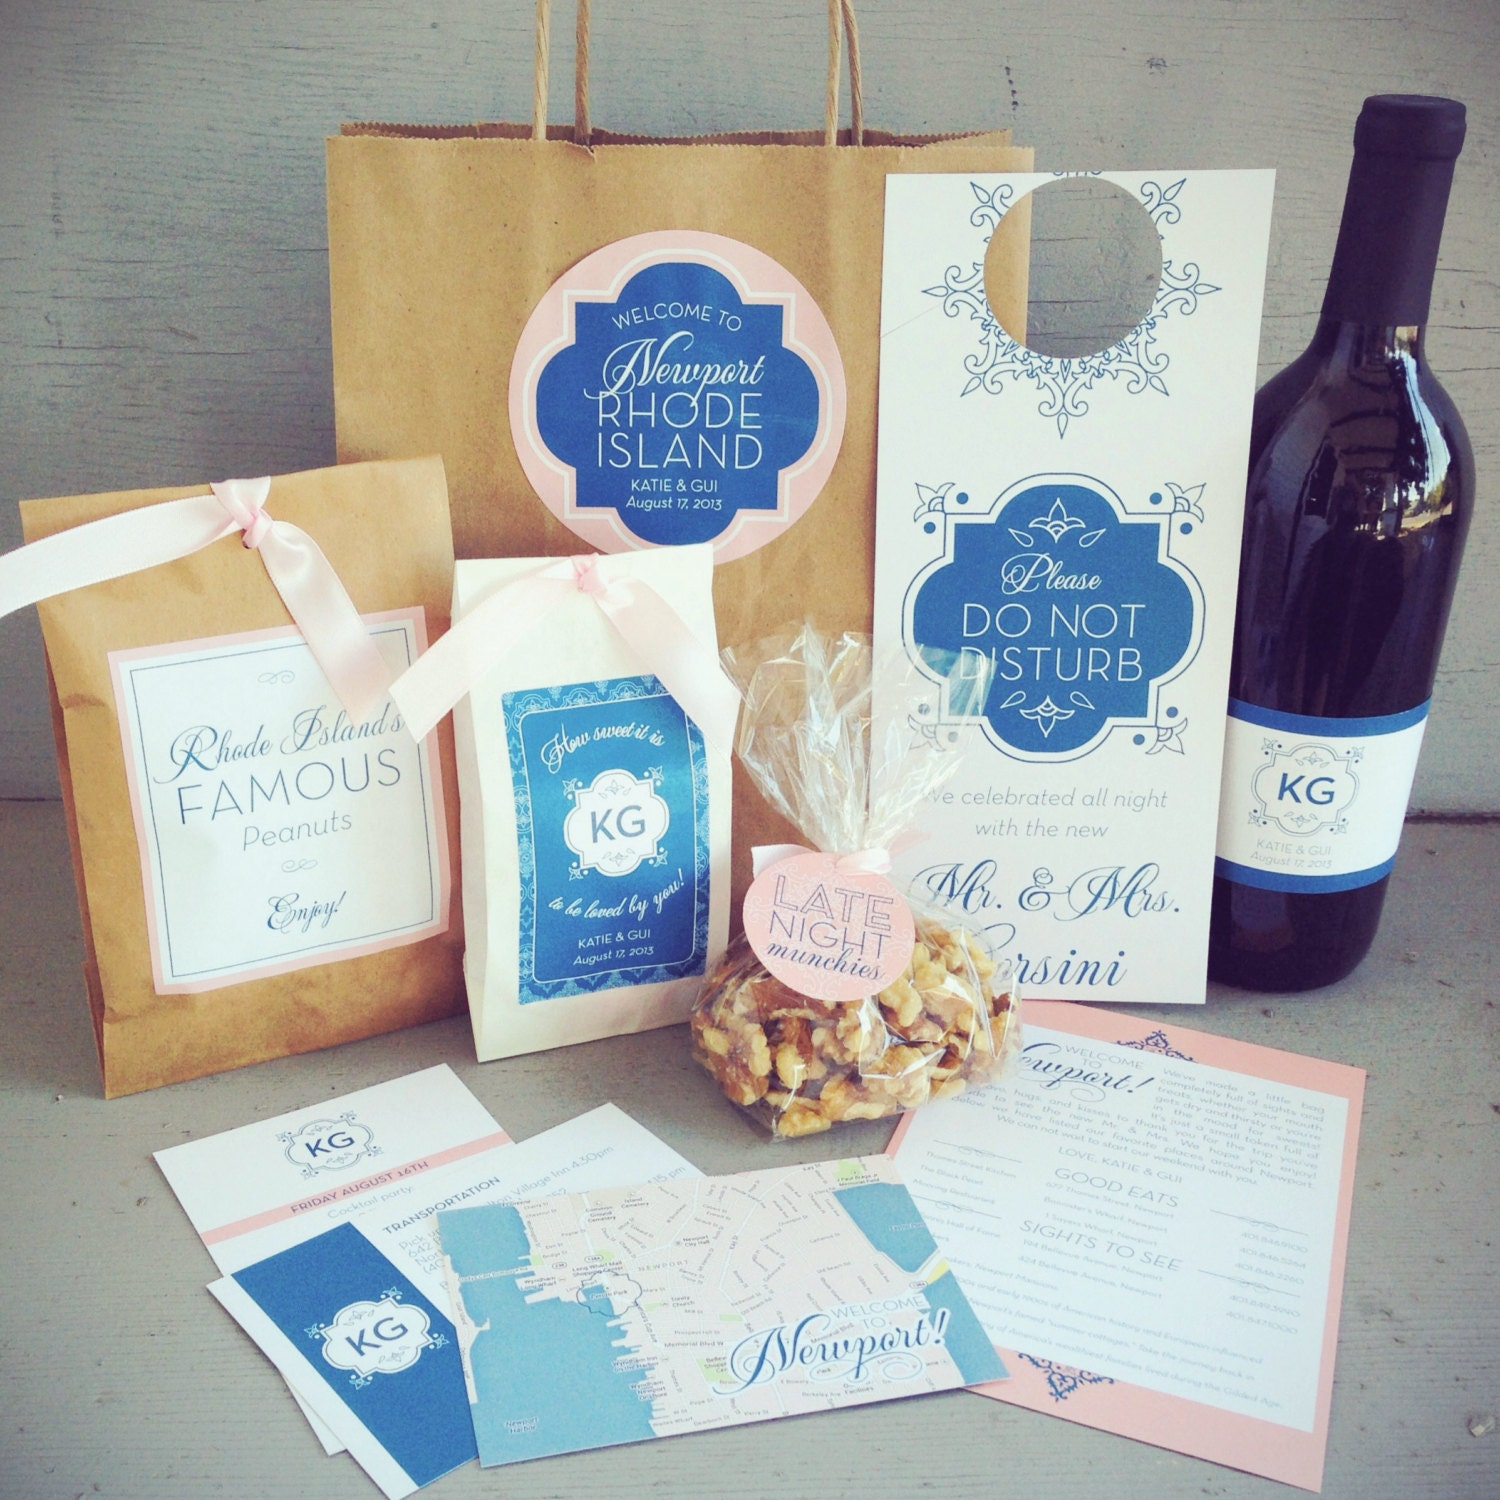 Wedding Welcome Bag Ideas Cheap : Wedding Guest Welcome Bag with Paper Bag & Accessories 10